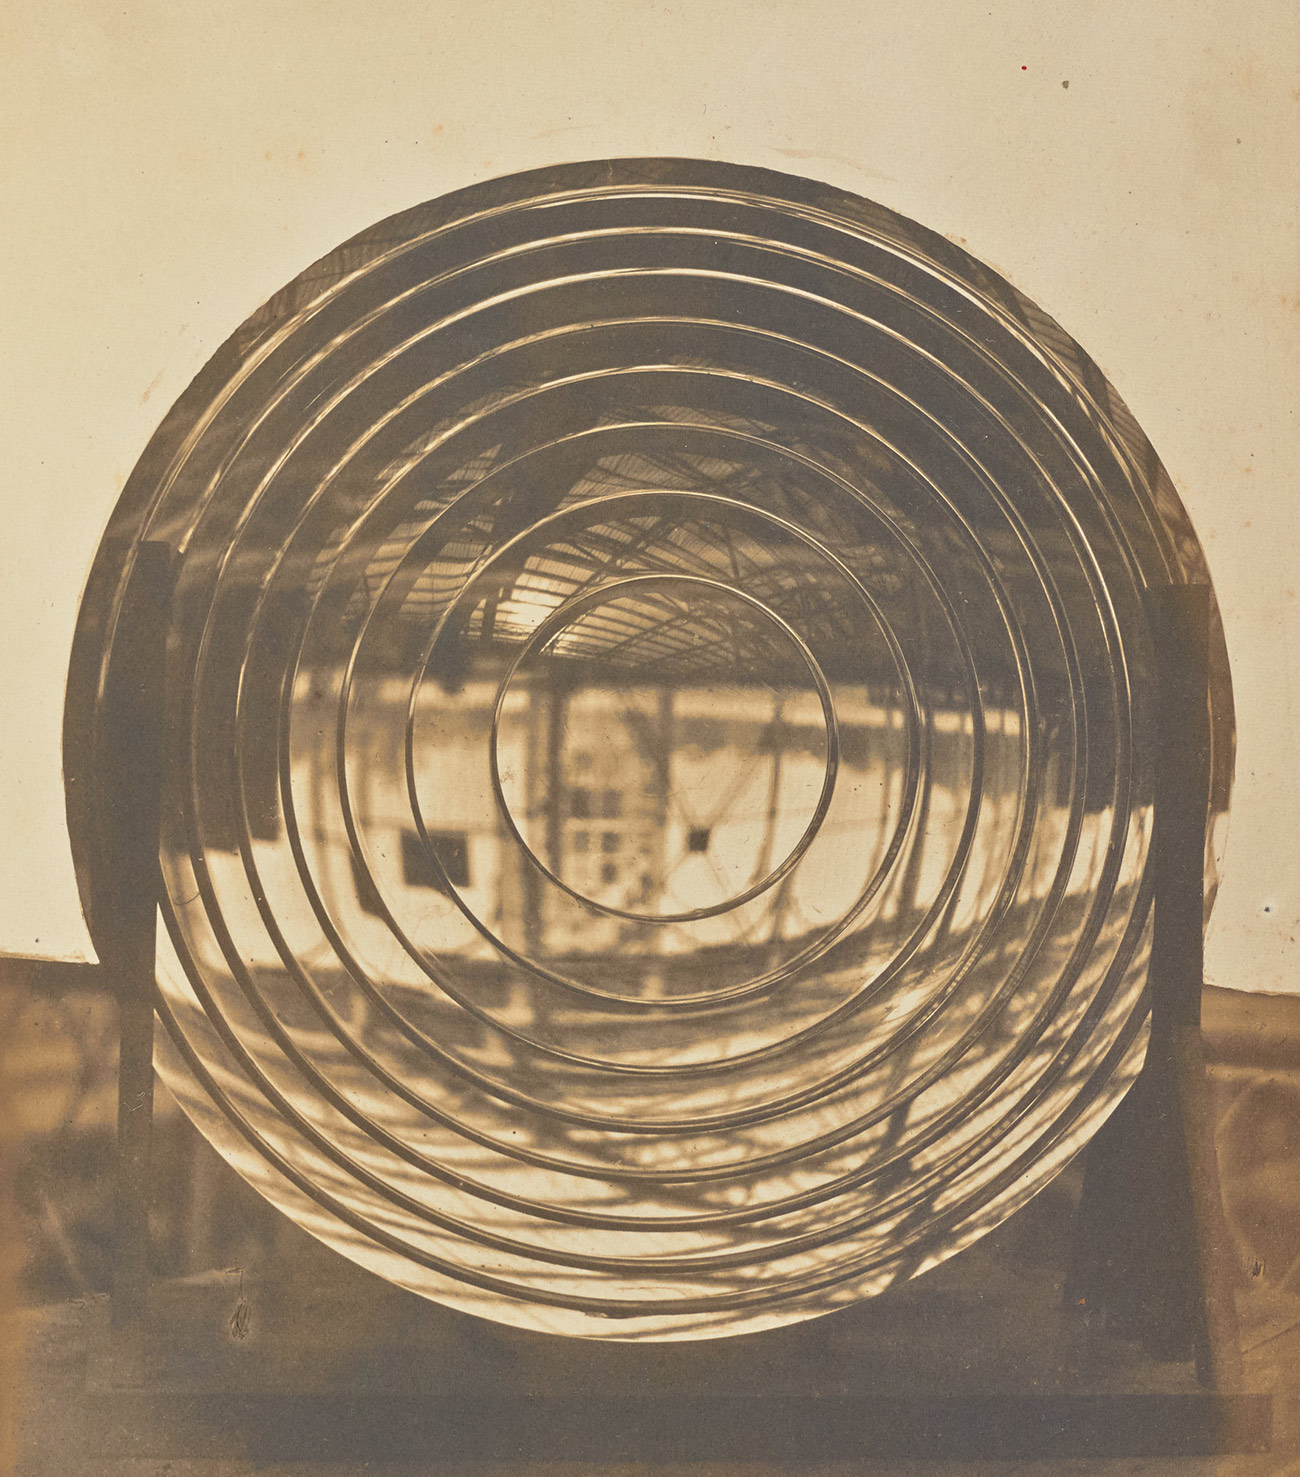 Sepia print of circular glass disc with multiple concentric circles within it.